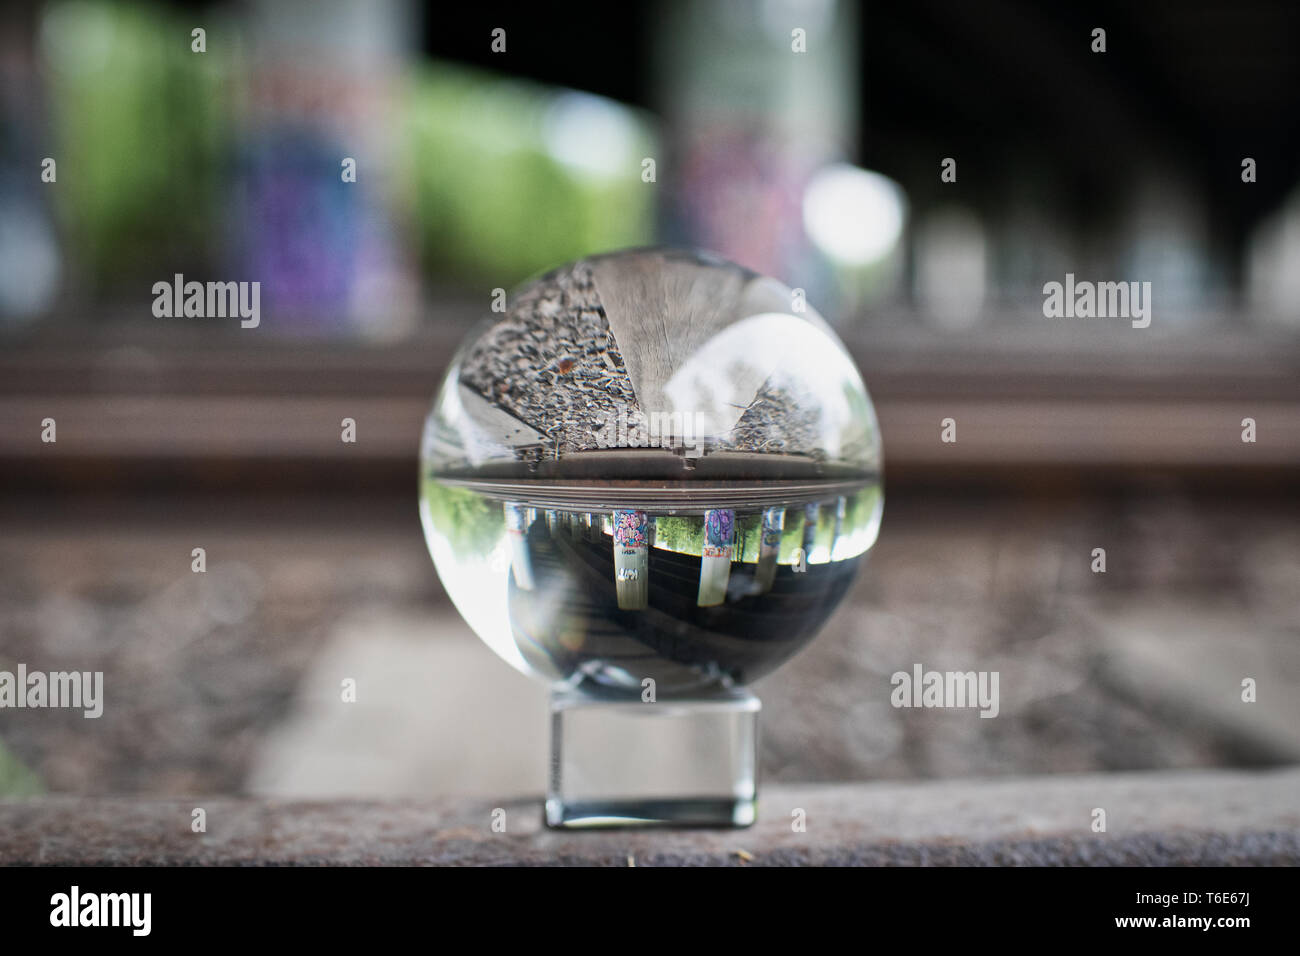 Lens ball photography old station - Stock Image